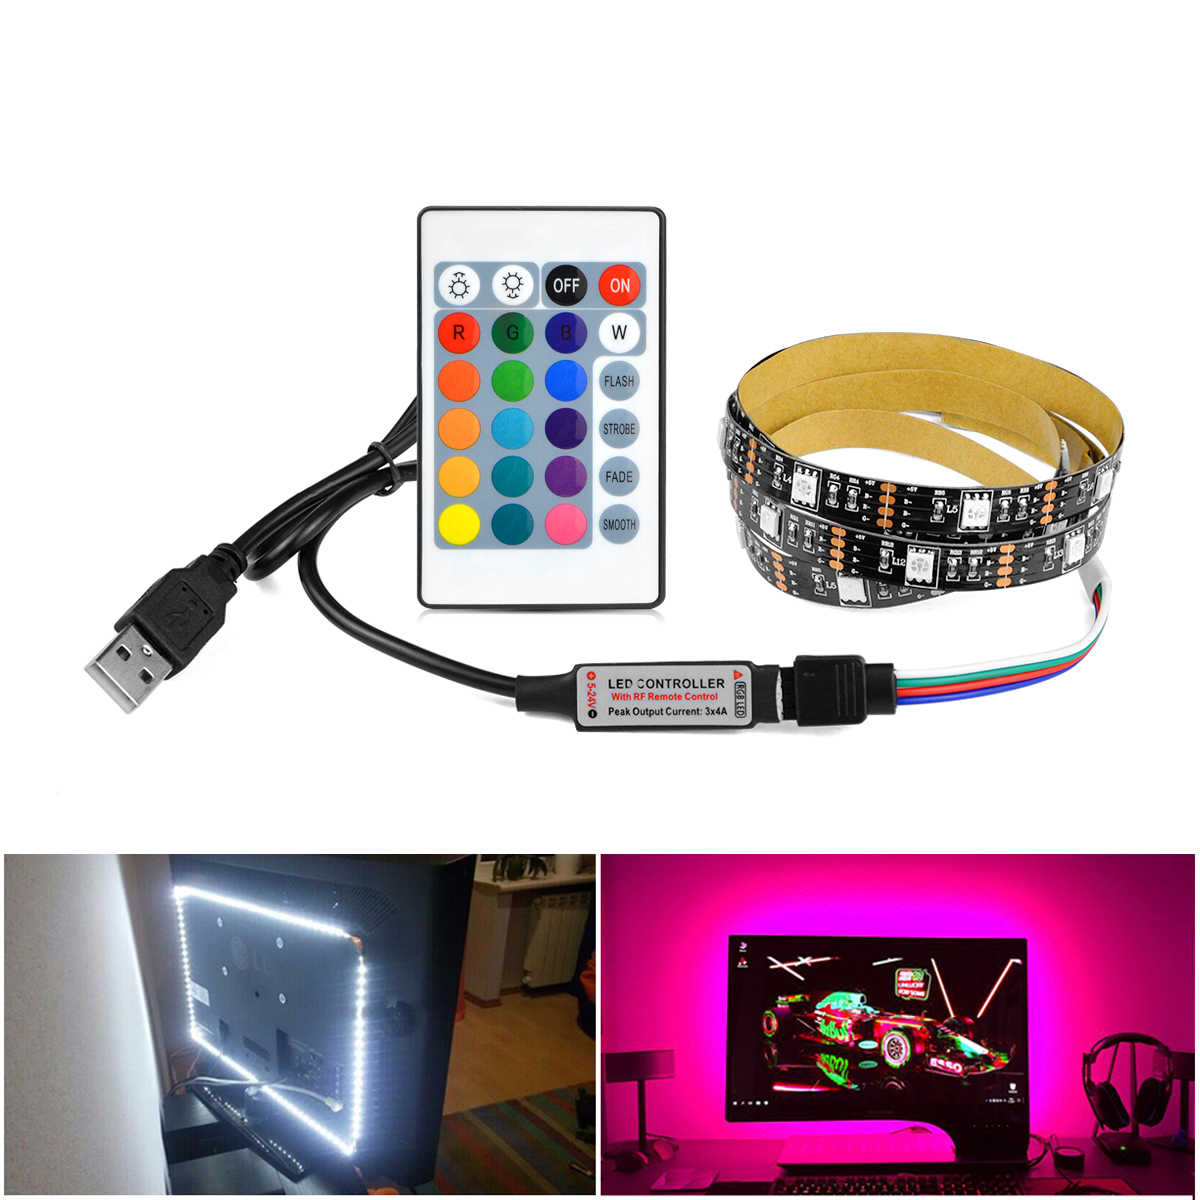 5 V USB Power LED Strip Light 1 M 2 M 3 M 4 M 5 M RGB TV Backlight lampu LED Tape untuk TV HDTV Latar Belakang RGB/Putih/Warm White